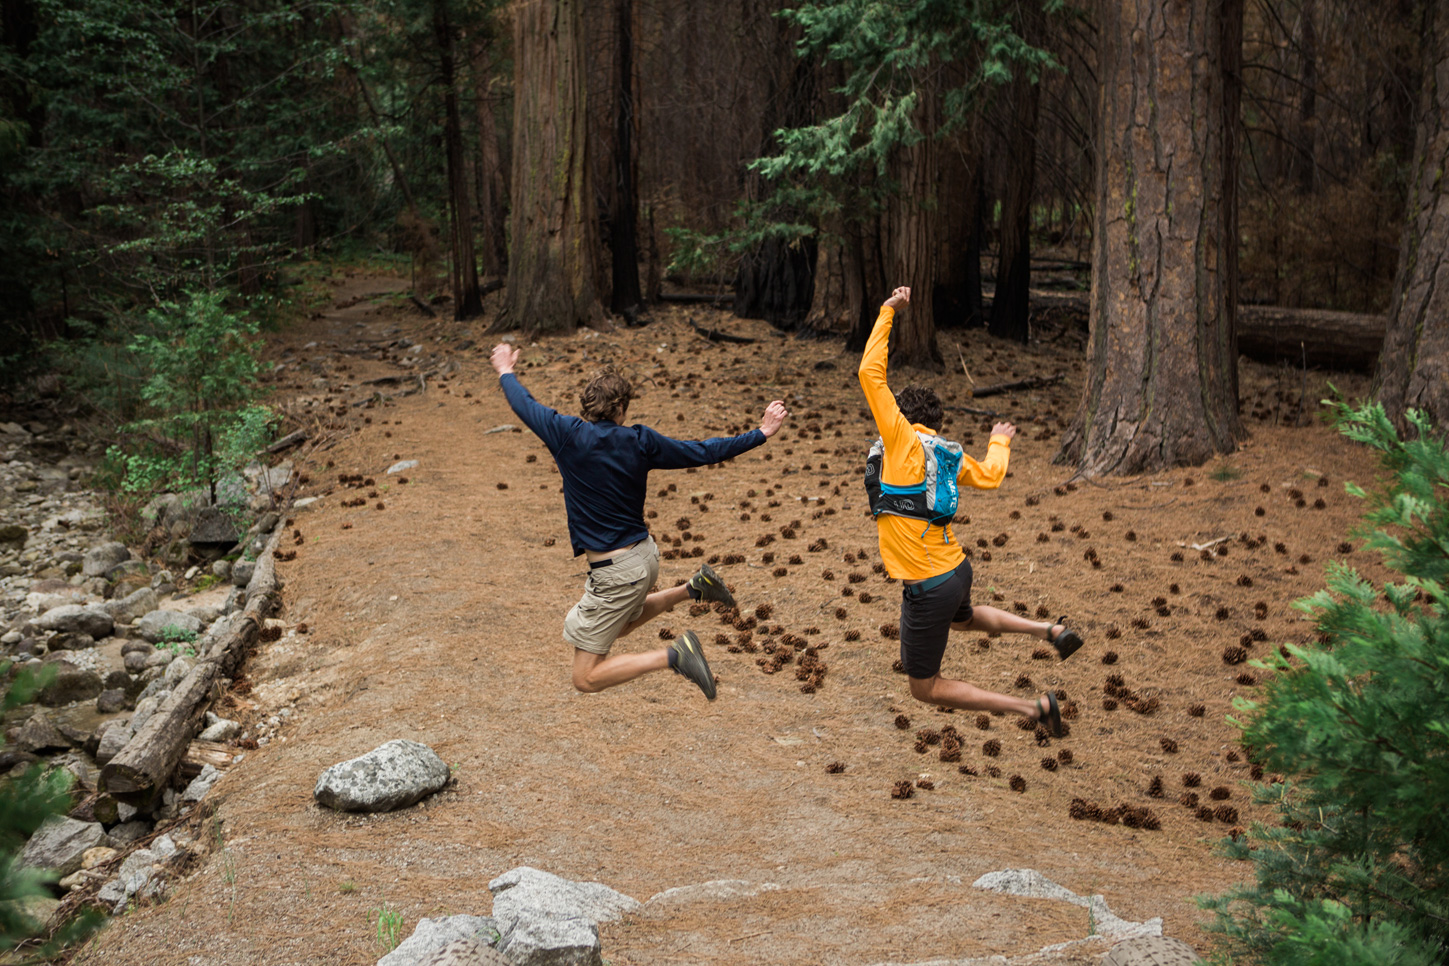 CindyGiovagnoli_Sequoia_KingsCanyon_National_Park_California_forest_fire-029.jpg